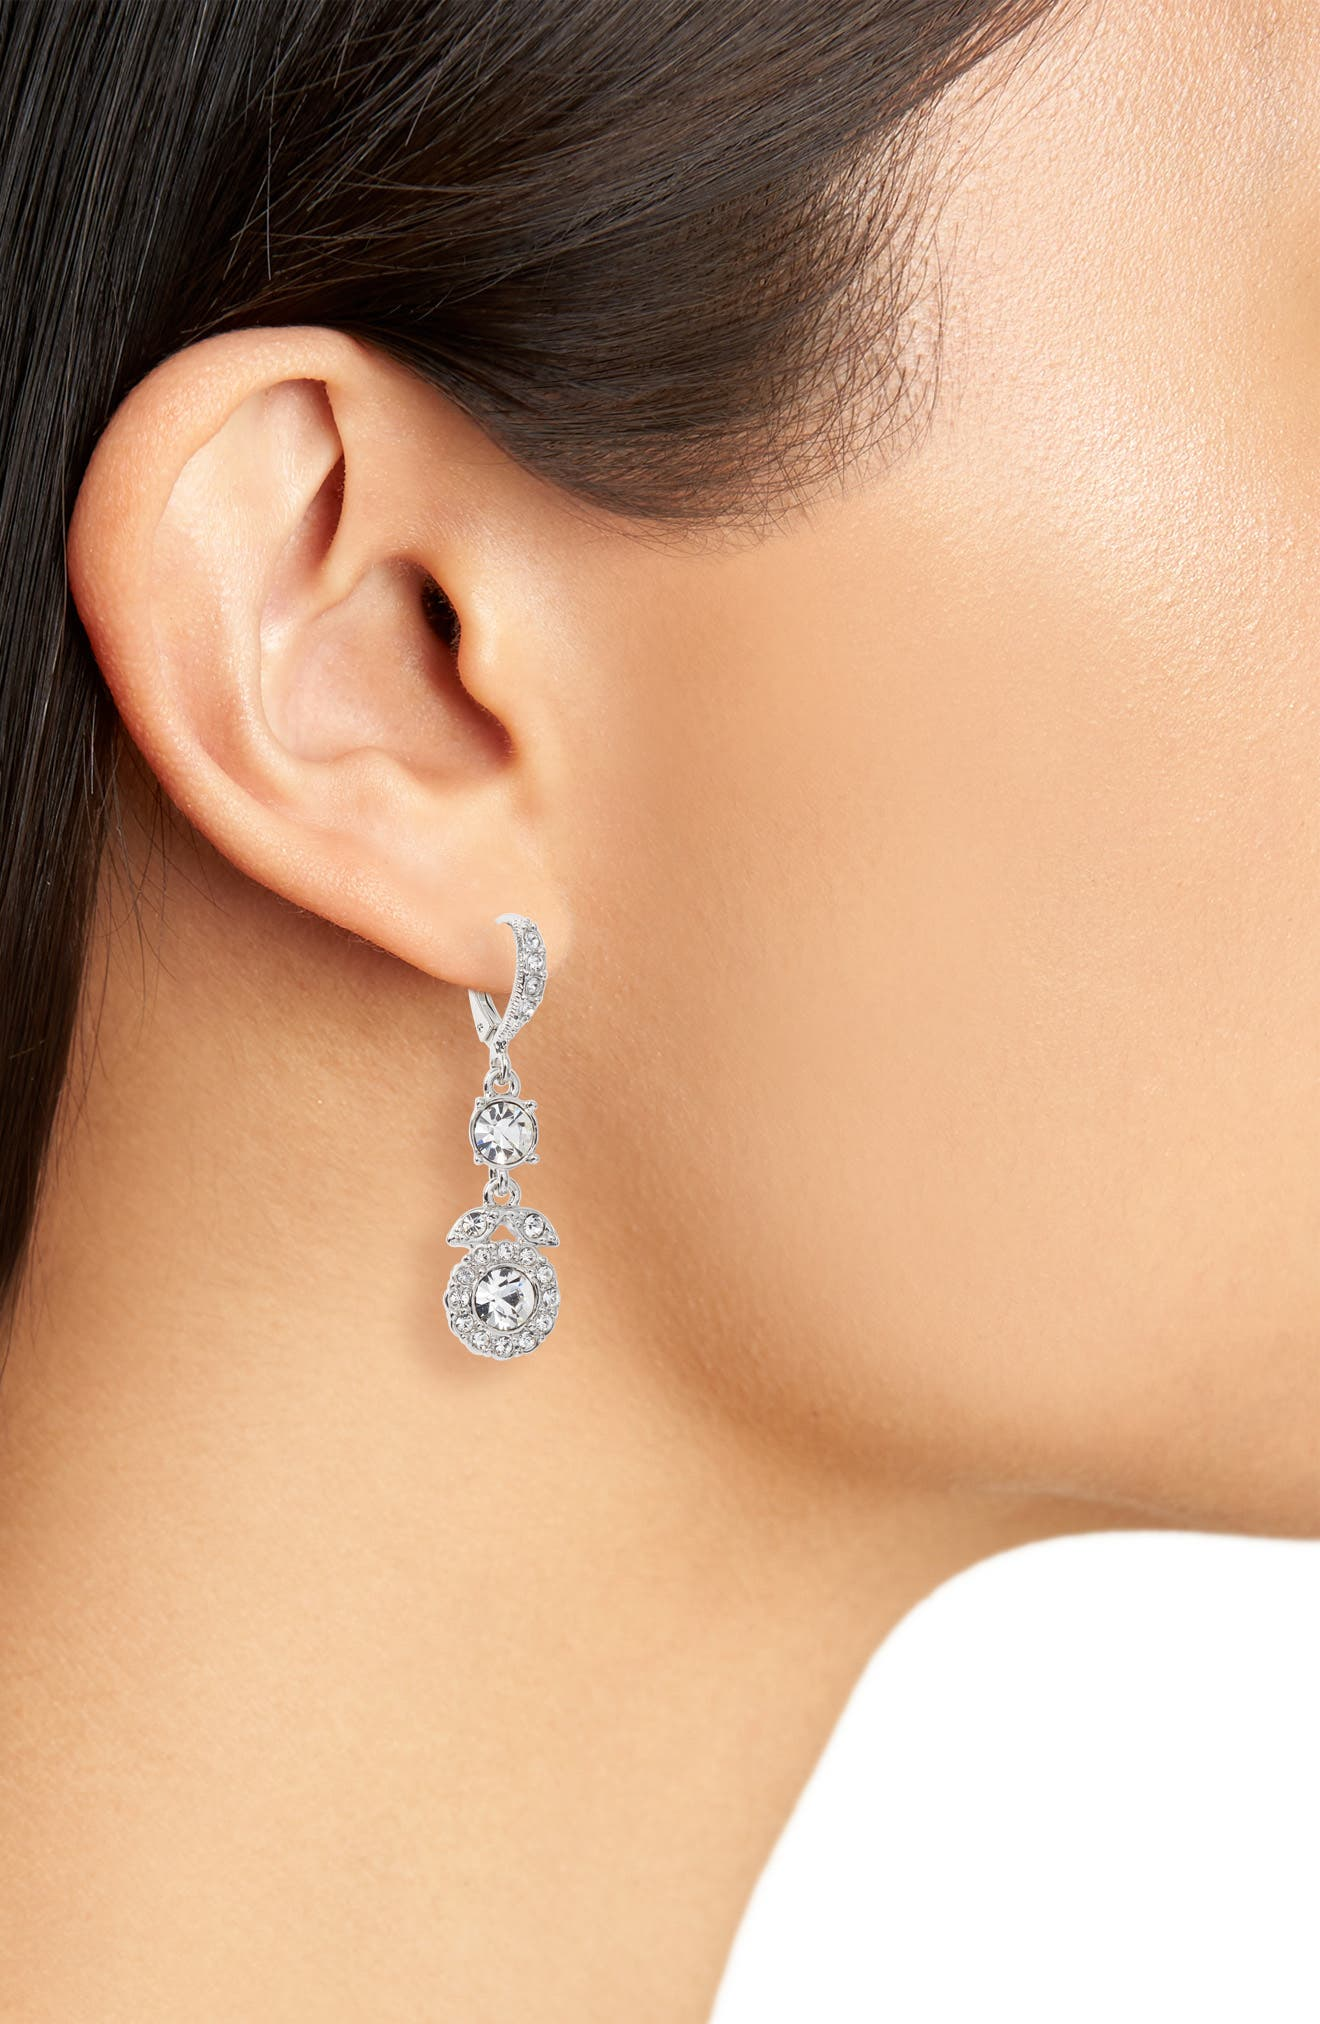 Crystal Drop Earrings,                             Alternate thumbnail 3, color,                             CRYSTAL/ SILVER